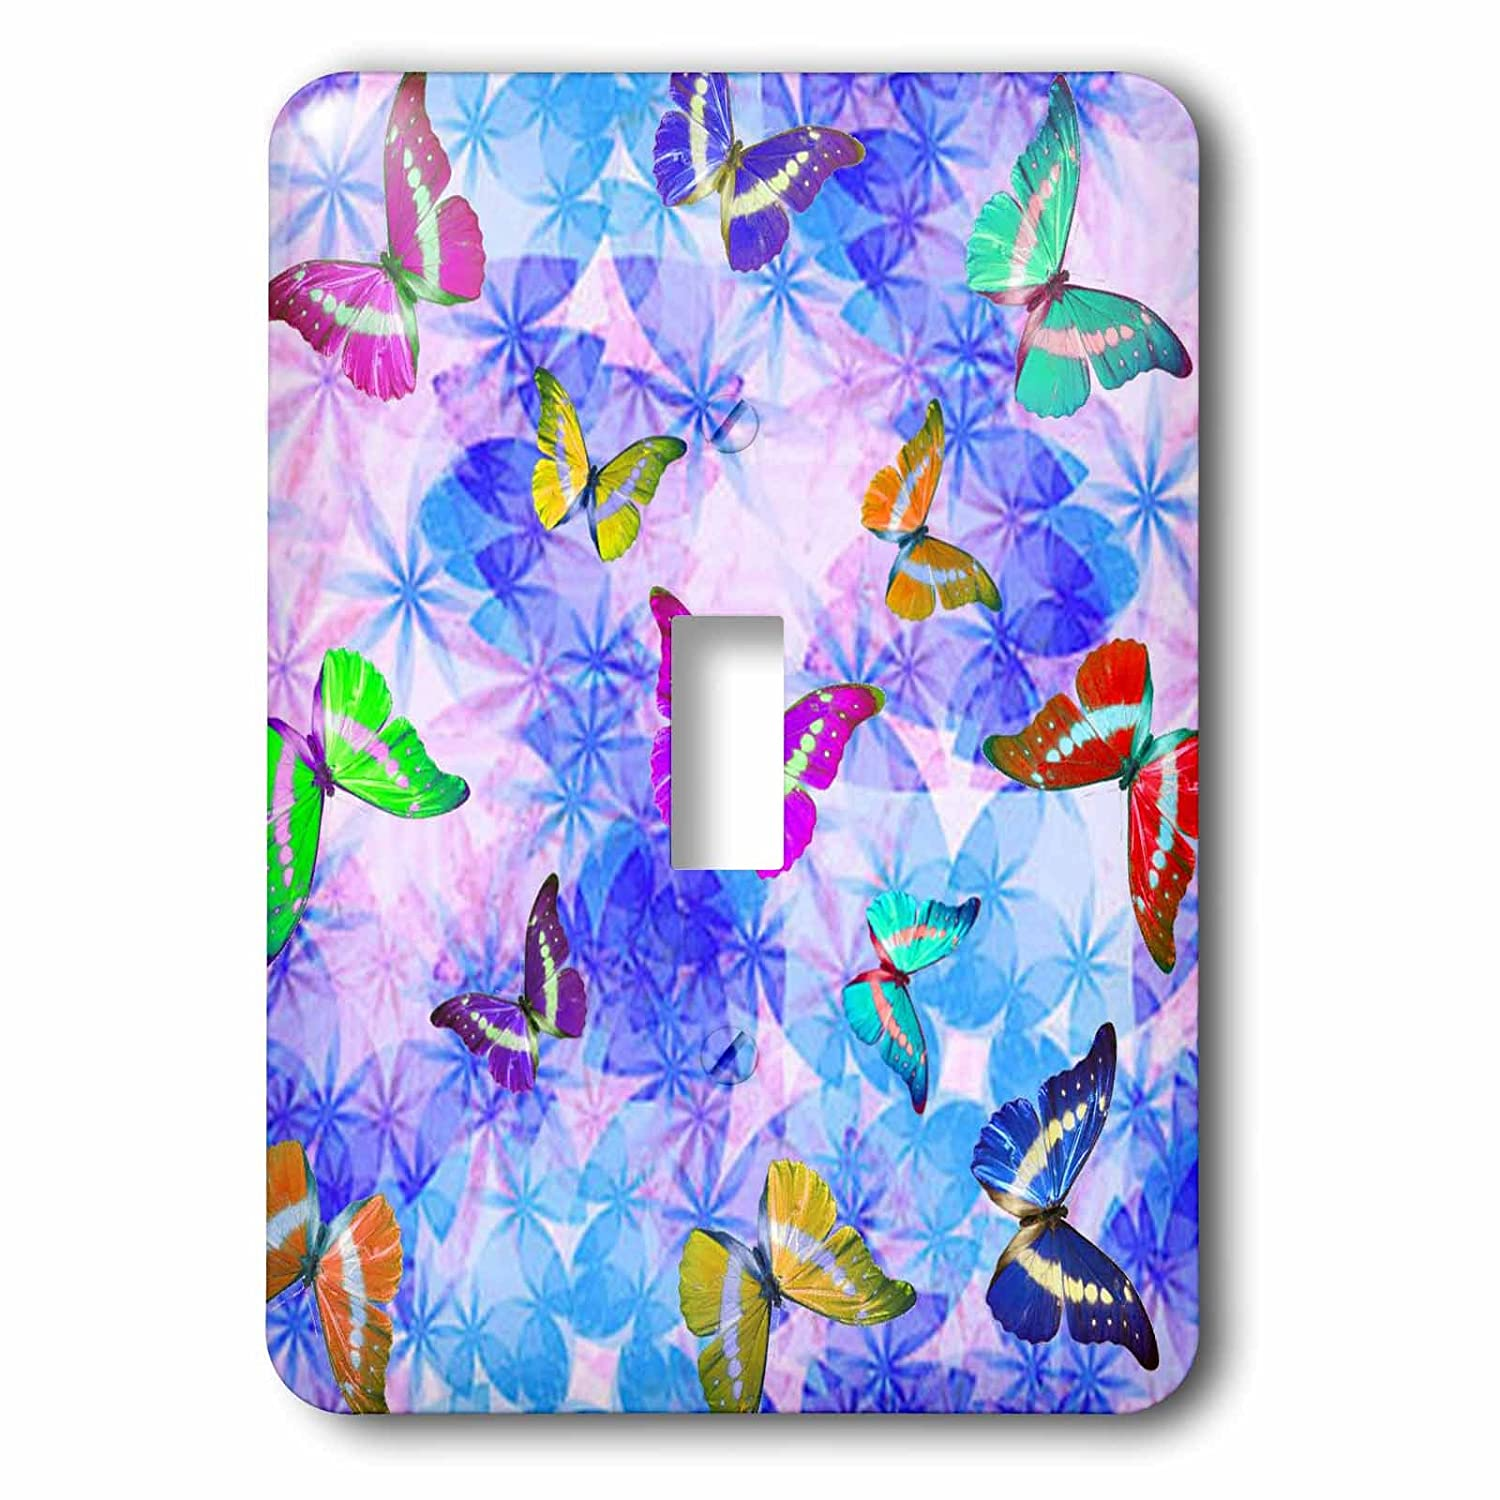 3dRose lsp/_63063/_1 Cosmic Dust Sparkles and Butterflies Pattern Single Toggle Switch